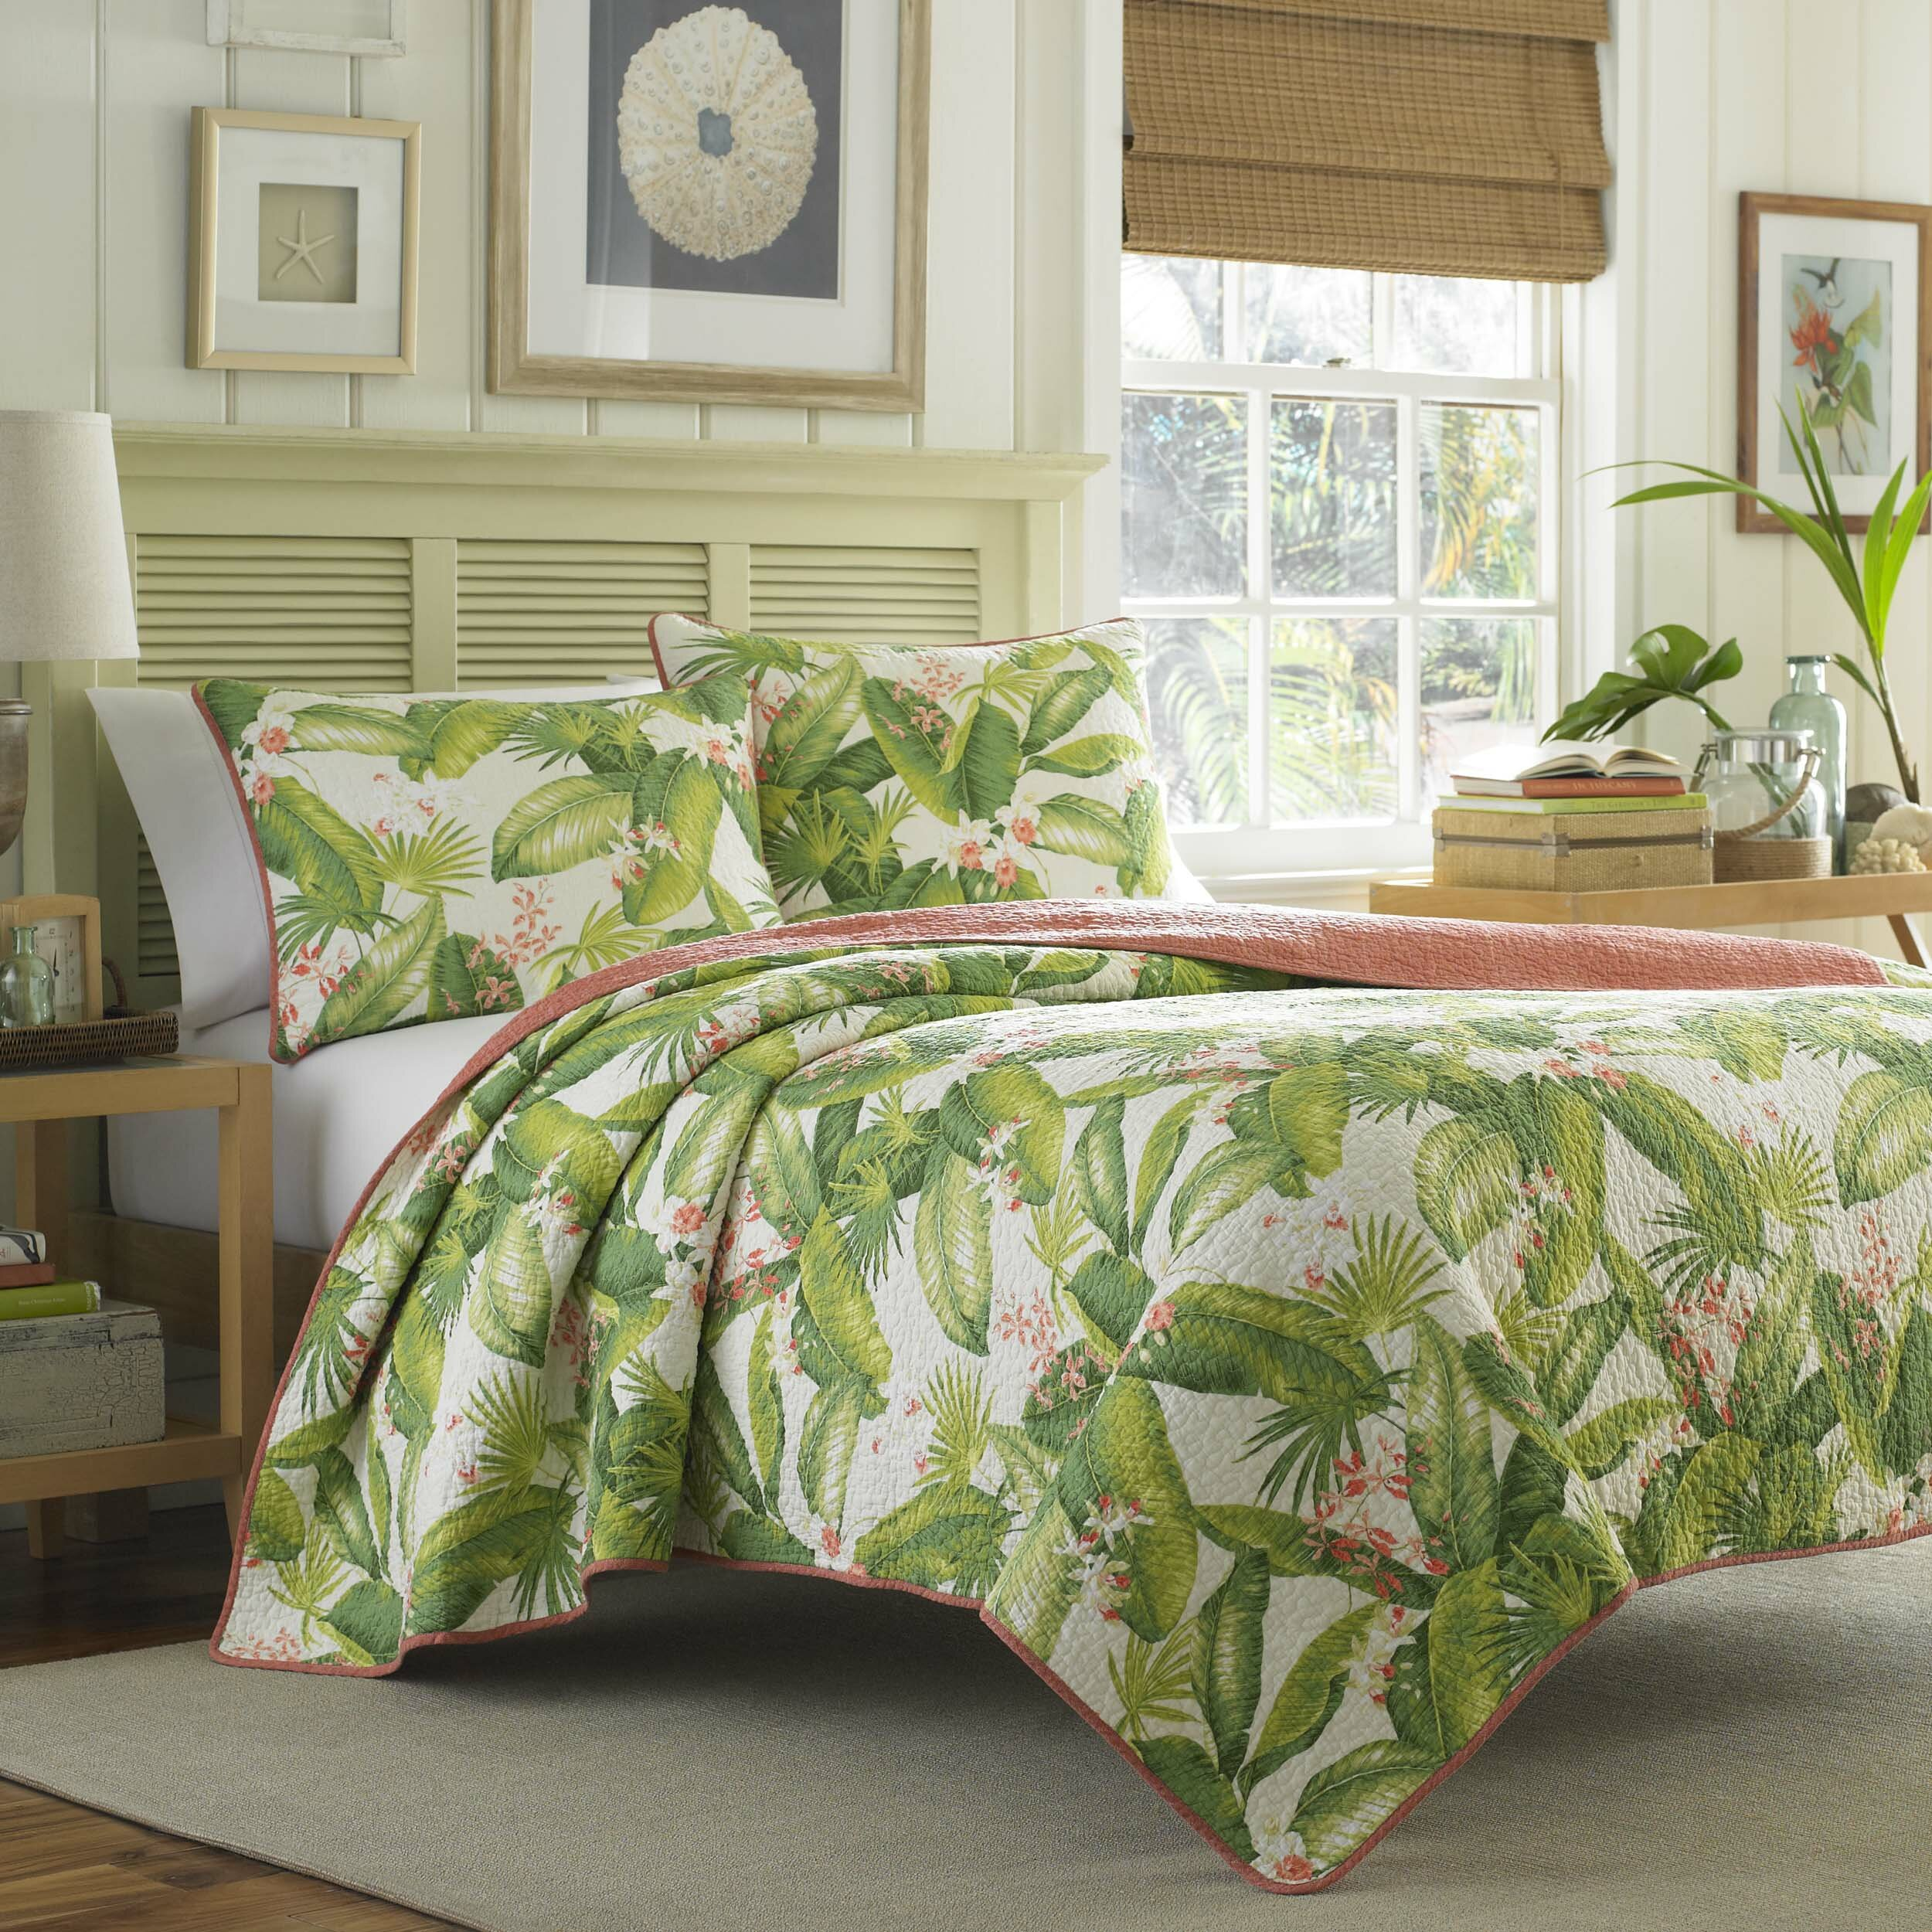 Tommy bahama bedding aregada dock reversible quilt set Tommy bahama bedding